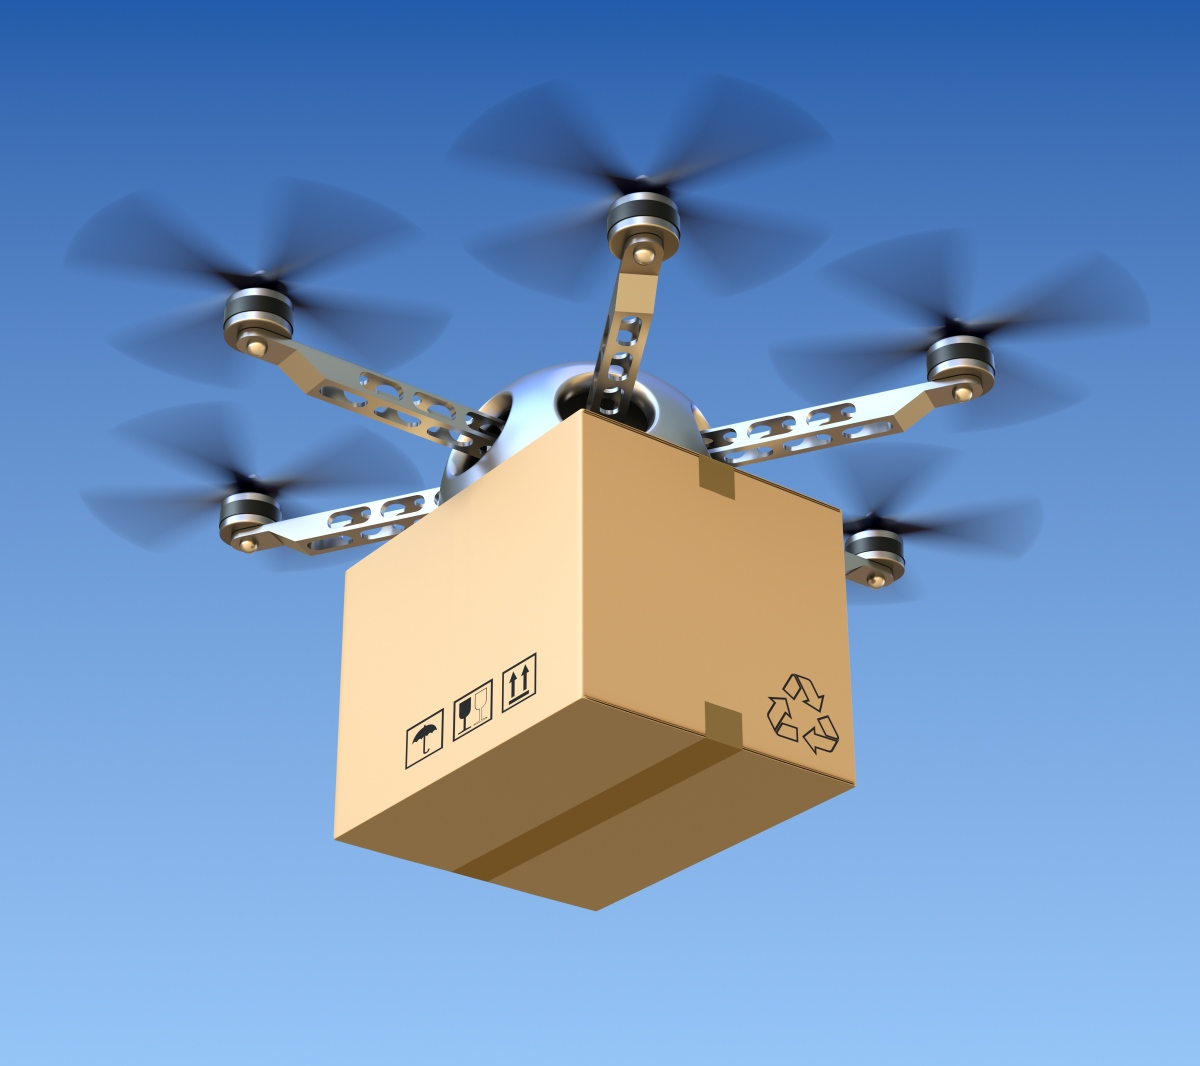 The drones arecoming!